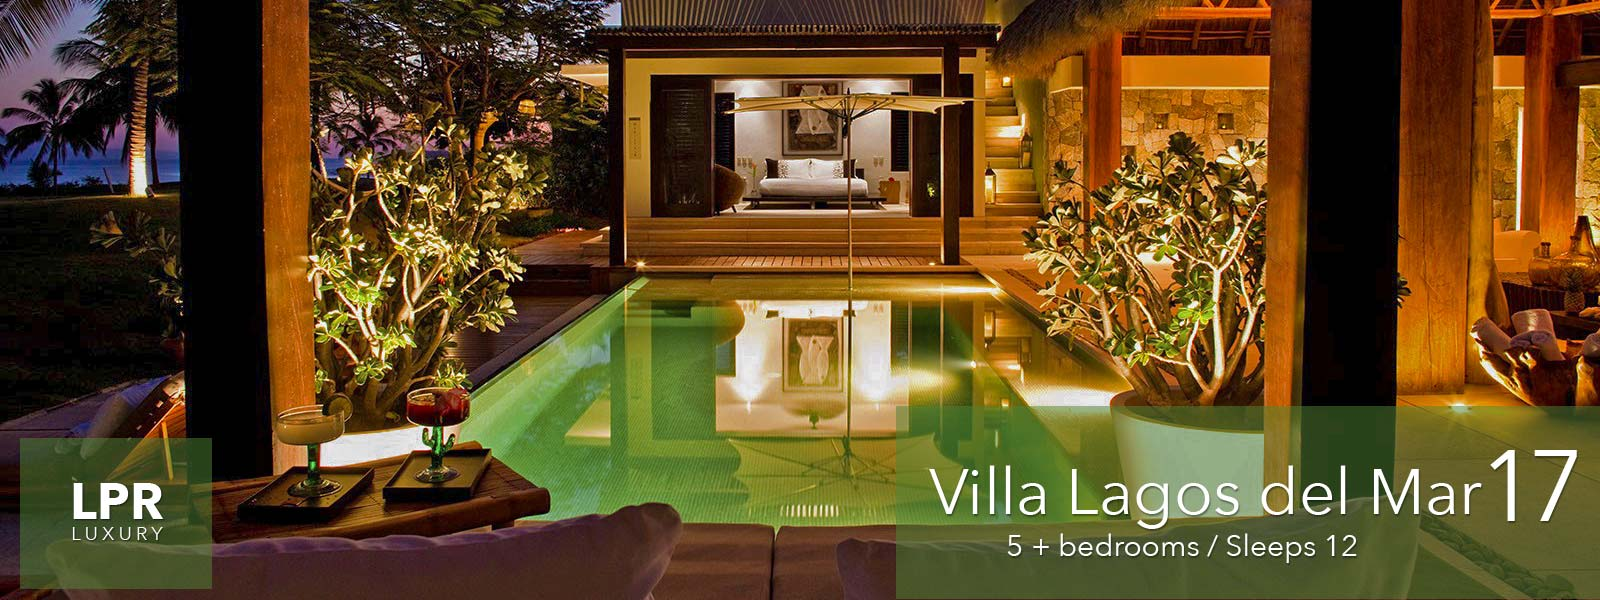 Villa Lagos del Mar 17 - Luxury Punta Mita Real Estate and Vacation Rentals Villas